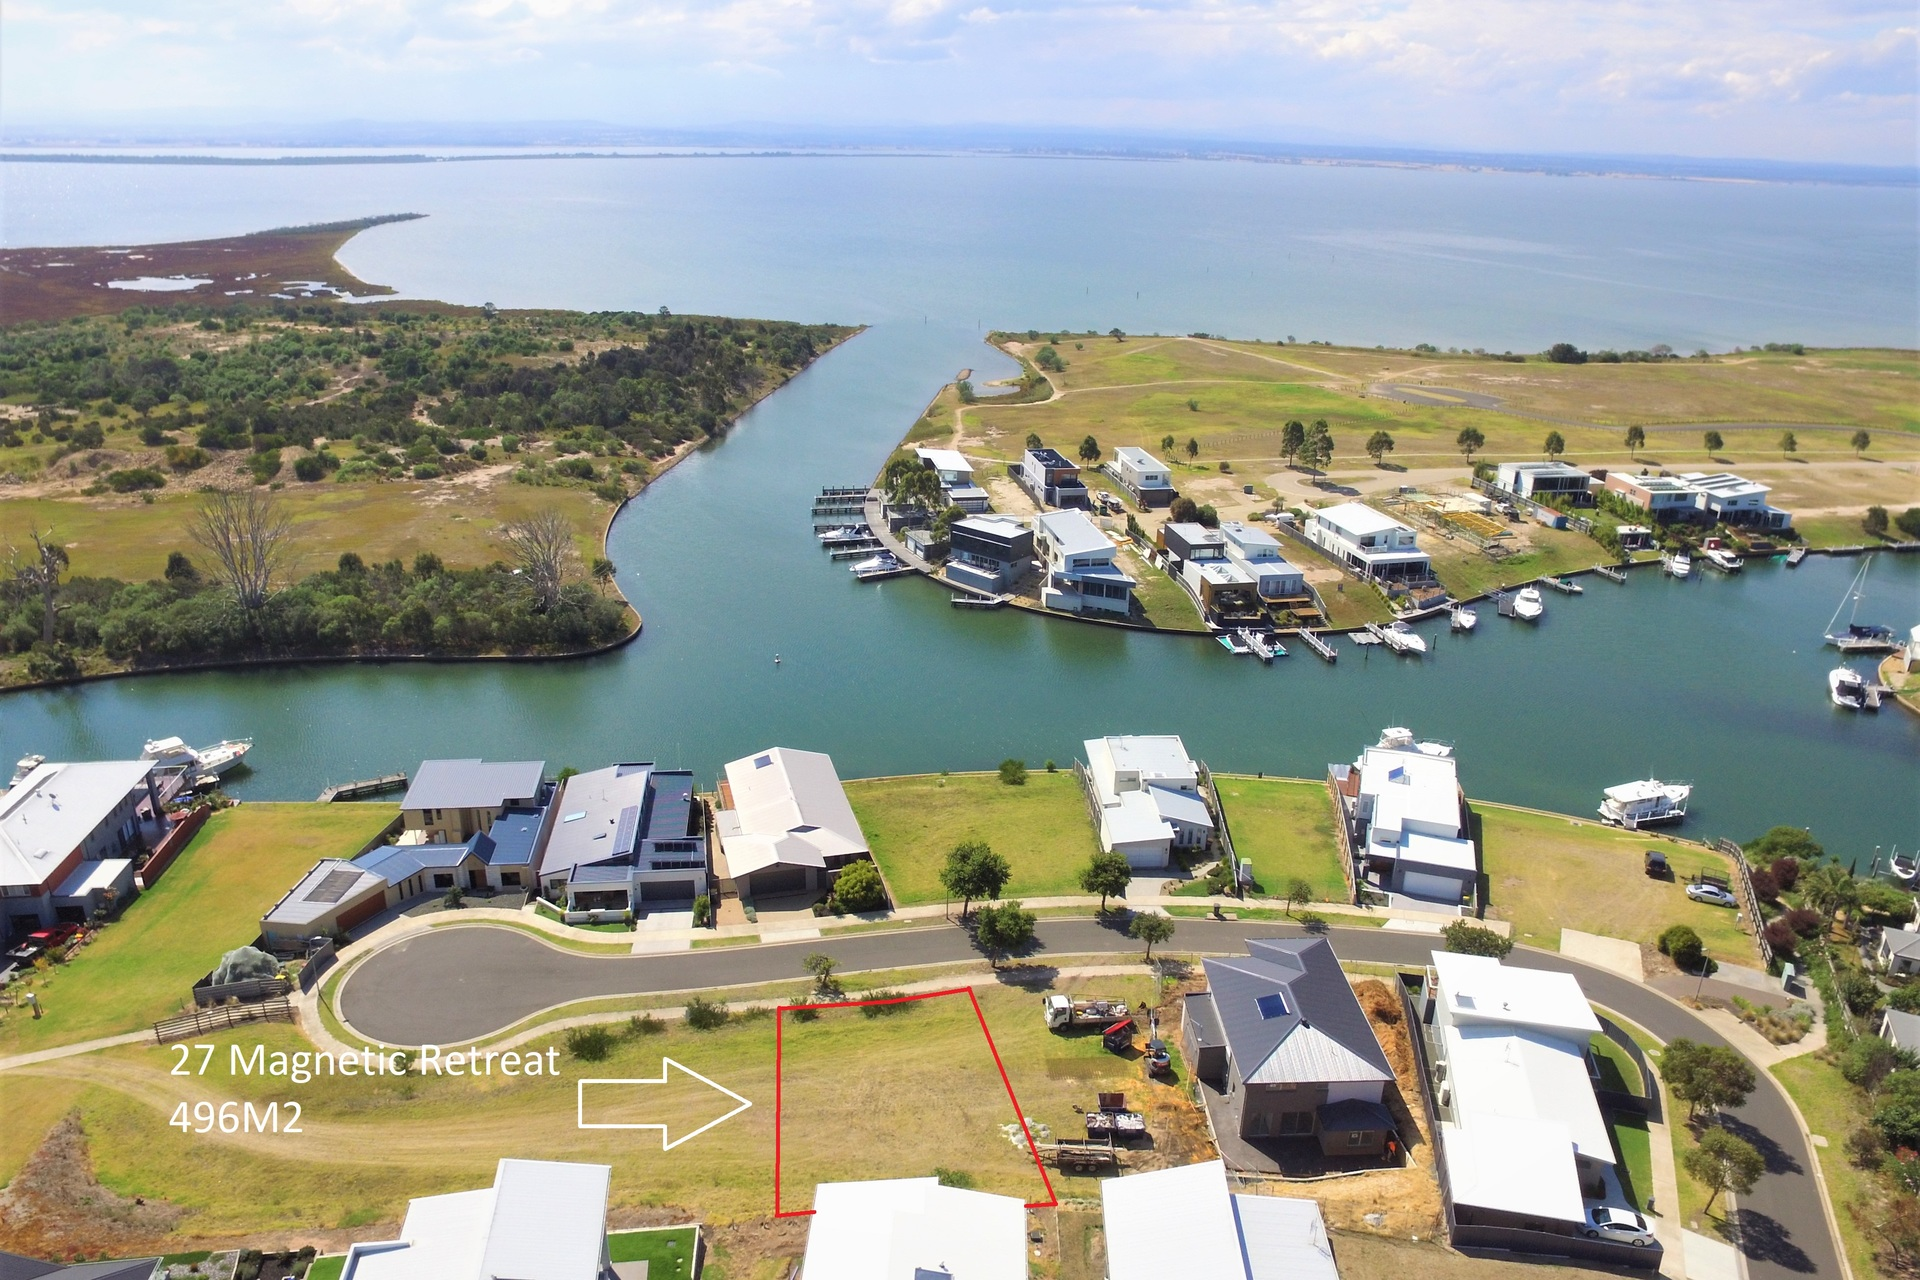 27 Magnetic Retreat, Paynesville VIC 3880-1